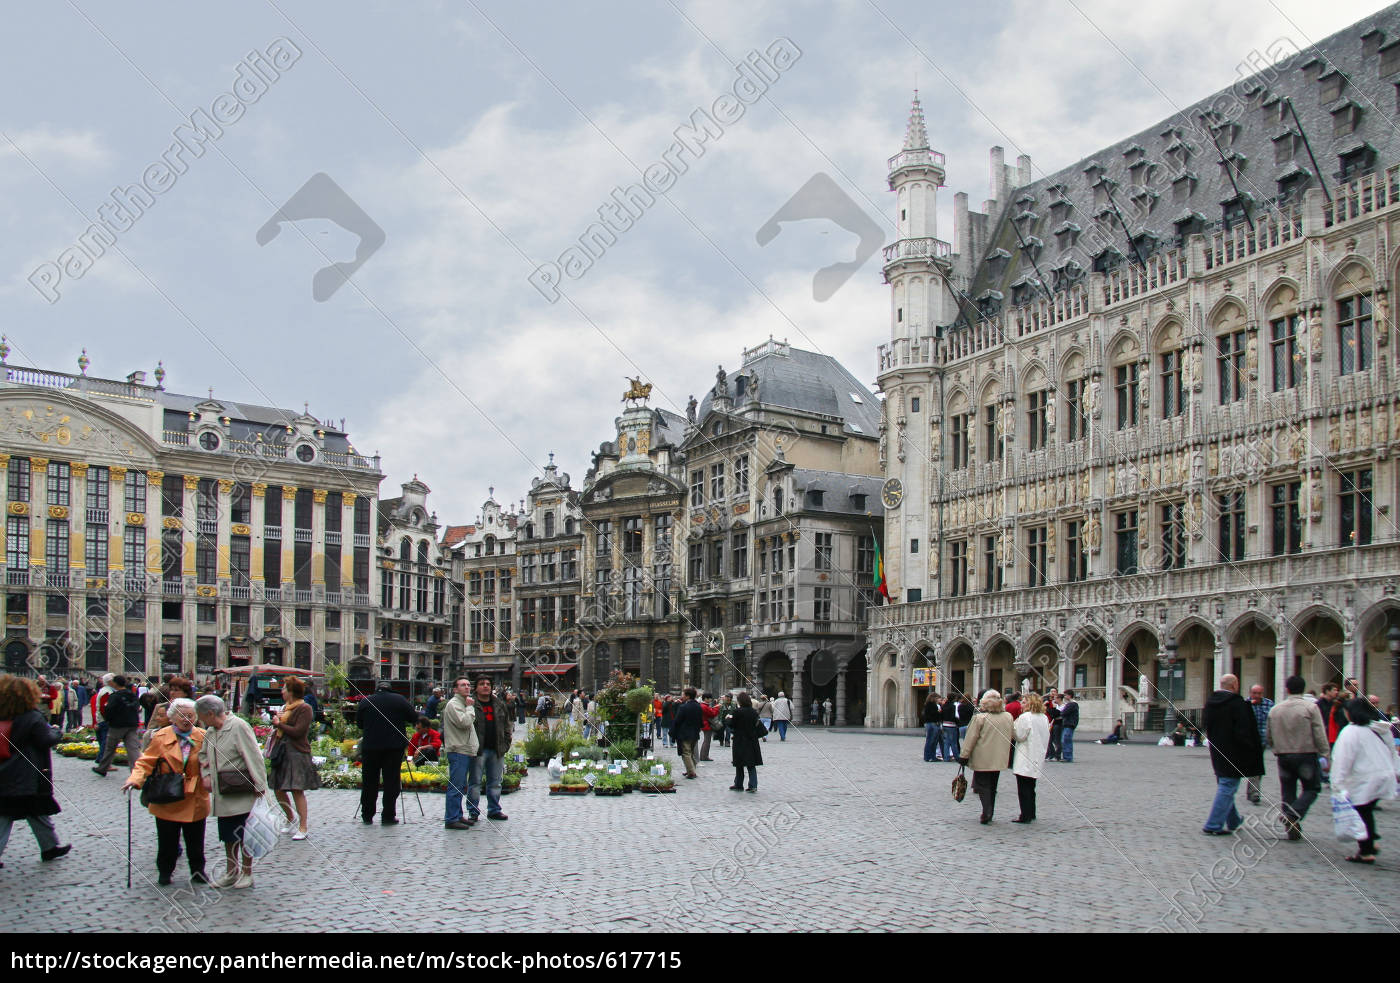 world, city, of, brussels - 617715